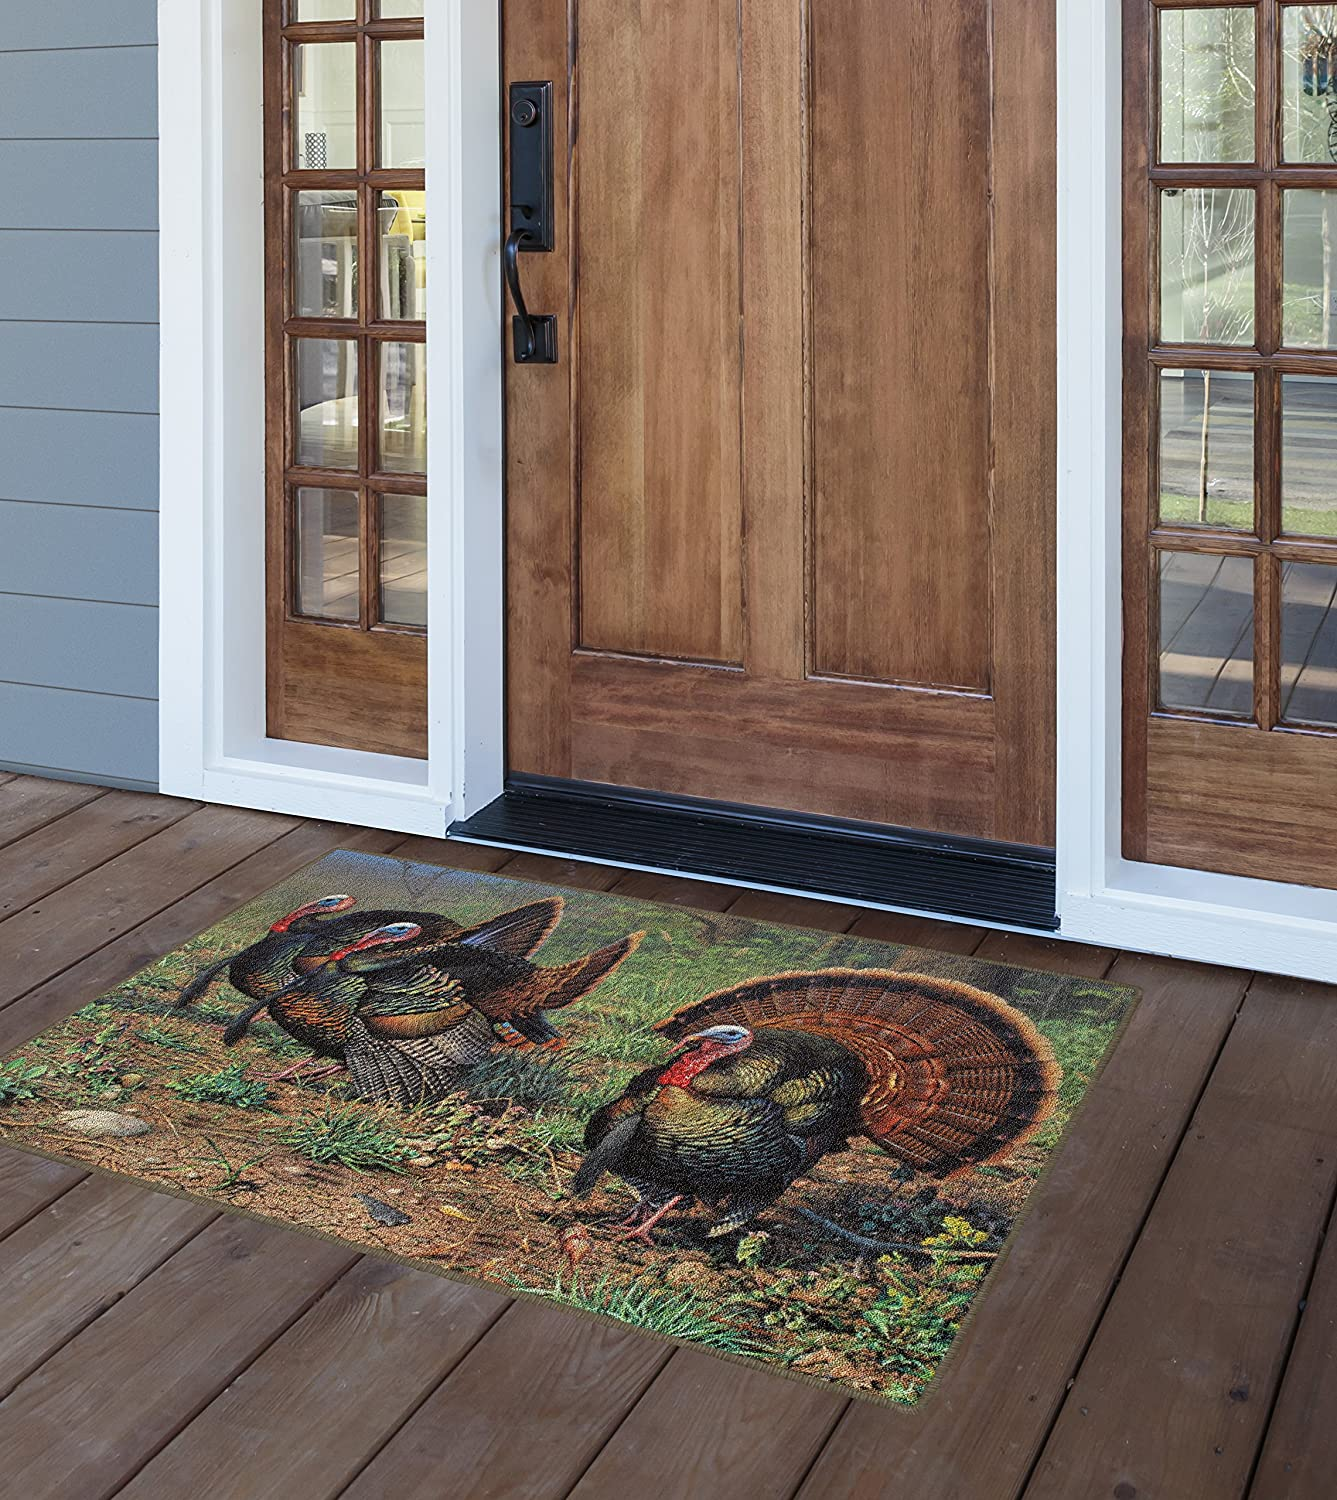 Brumlow Mills EW10121-30x46 Grounded in Tradition Wild Turkey Rug 26 x 310 Multi-Colored